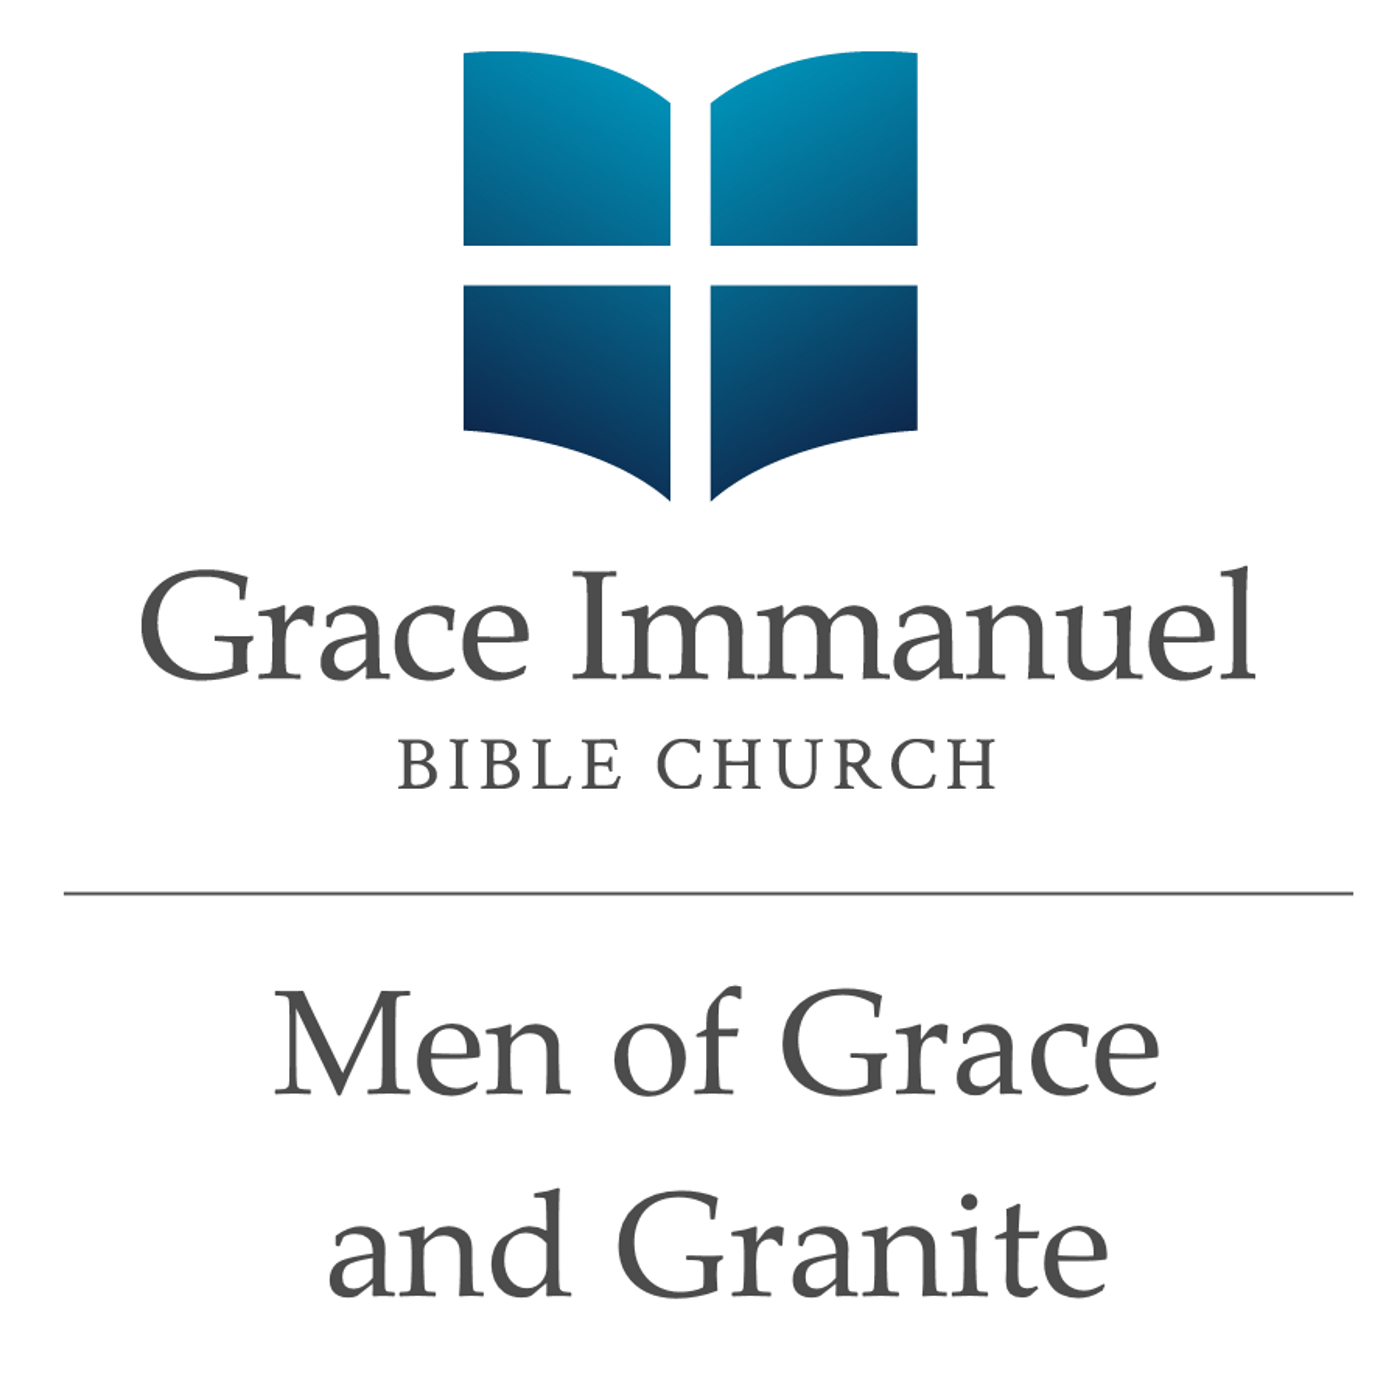 Grace Immanuel Bible Church: Men of Grace and Granite